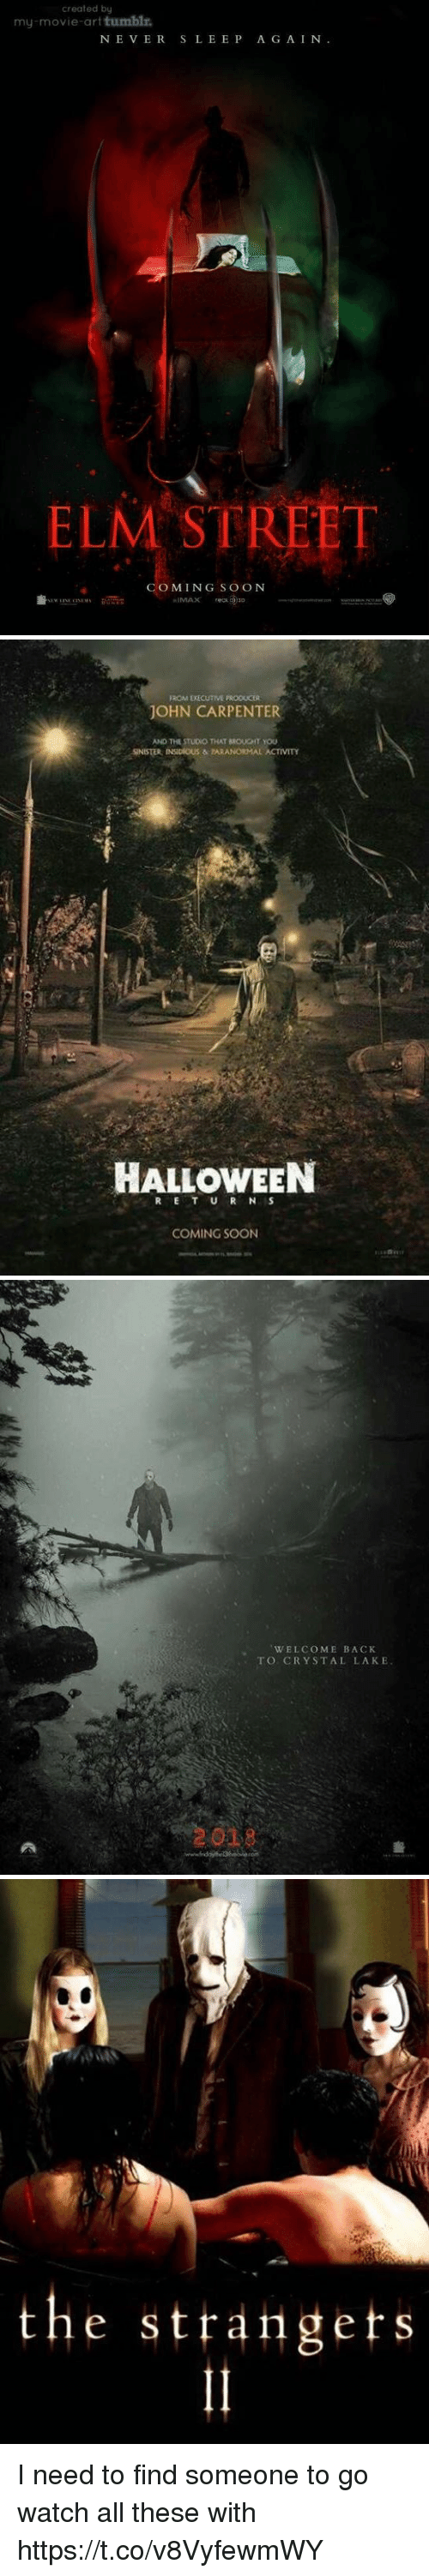 Sinister: created by  my-movie-art tumblr  NE VERSLEEP A G AIN.  ELM STREET  COMING SO oN   ROM EXECUTIVE PRODUCER  JOHN CARPENTER  AND THE STUDIO THAT BROUGHT YOU  SINISTER INSIDIOUS & TARANORMAL ACTIVITY  HALLOWEEN  COMING SOON   WELCOME BACK  TO CRYSTAL LAKE  2029   the strangets  1 I need to find someone to go watch all these with https://t.co/v8VyfewmWY